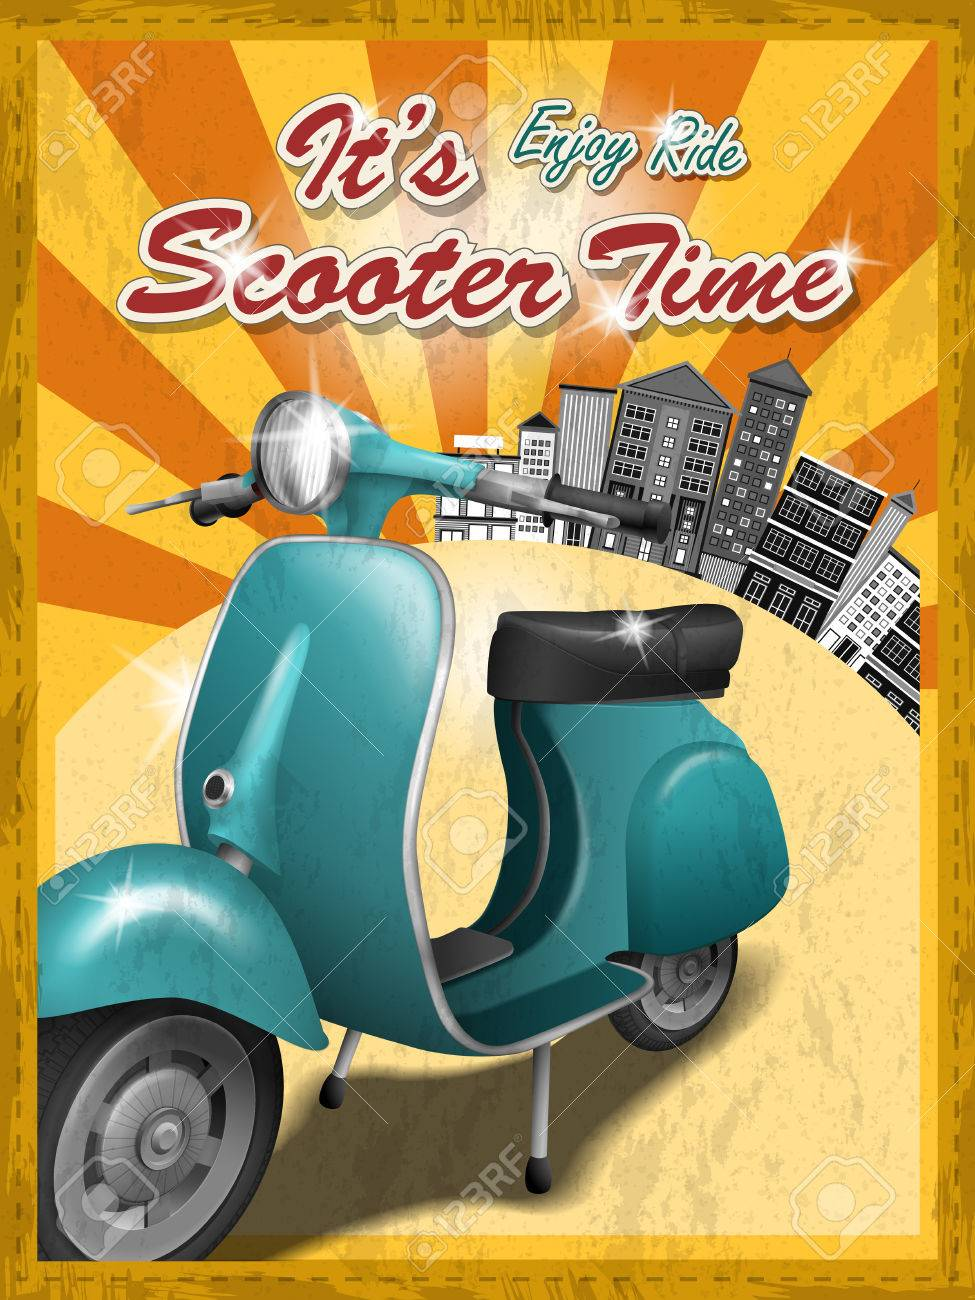 Scooter Travel Concept Poster Design With Retro Background Royalty Free Cliparts Vectors And Stock Illustration Image 42445281